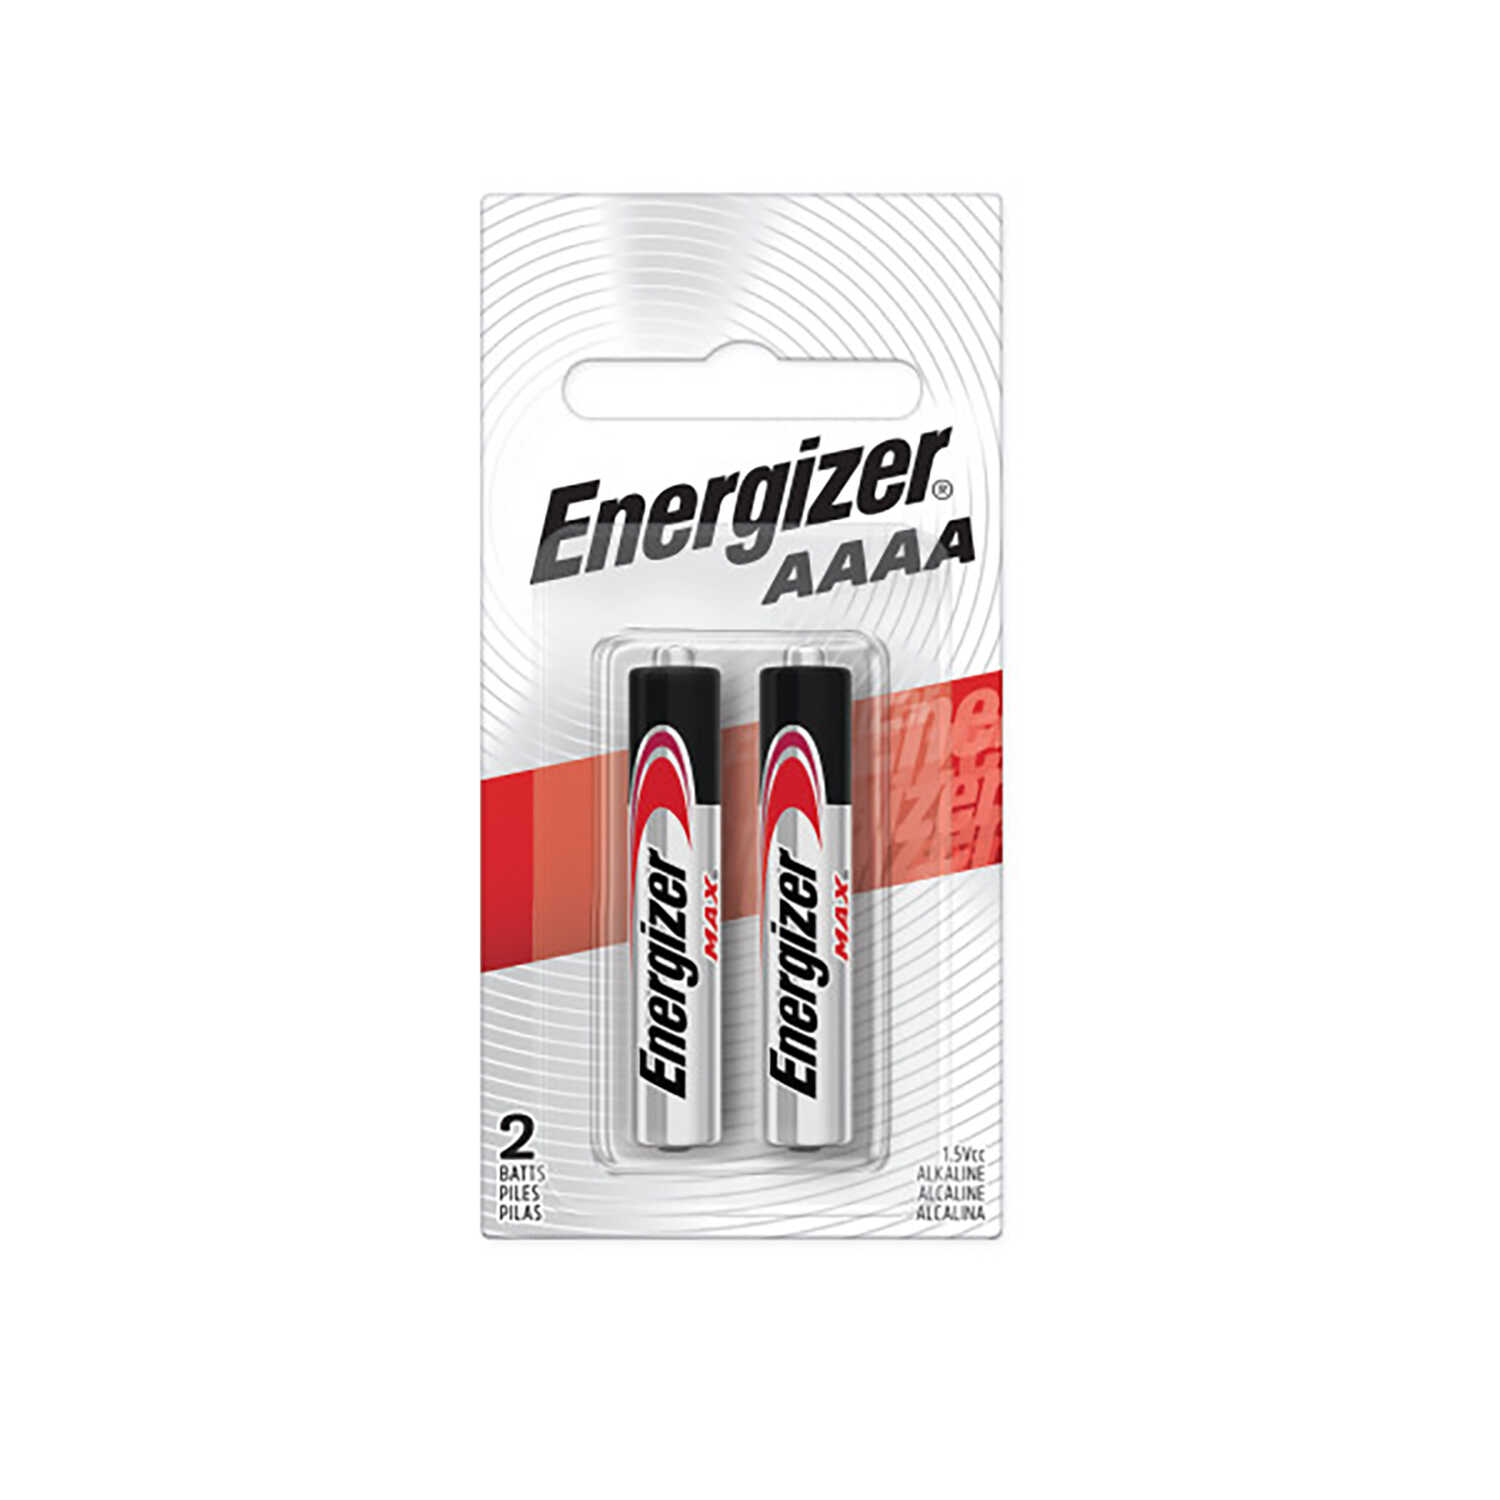 Energizer  MAX  AAAA  Alkaline  Batteries  2 pk Carded